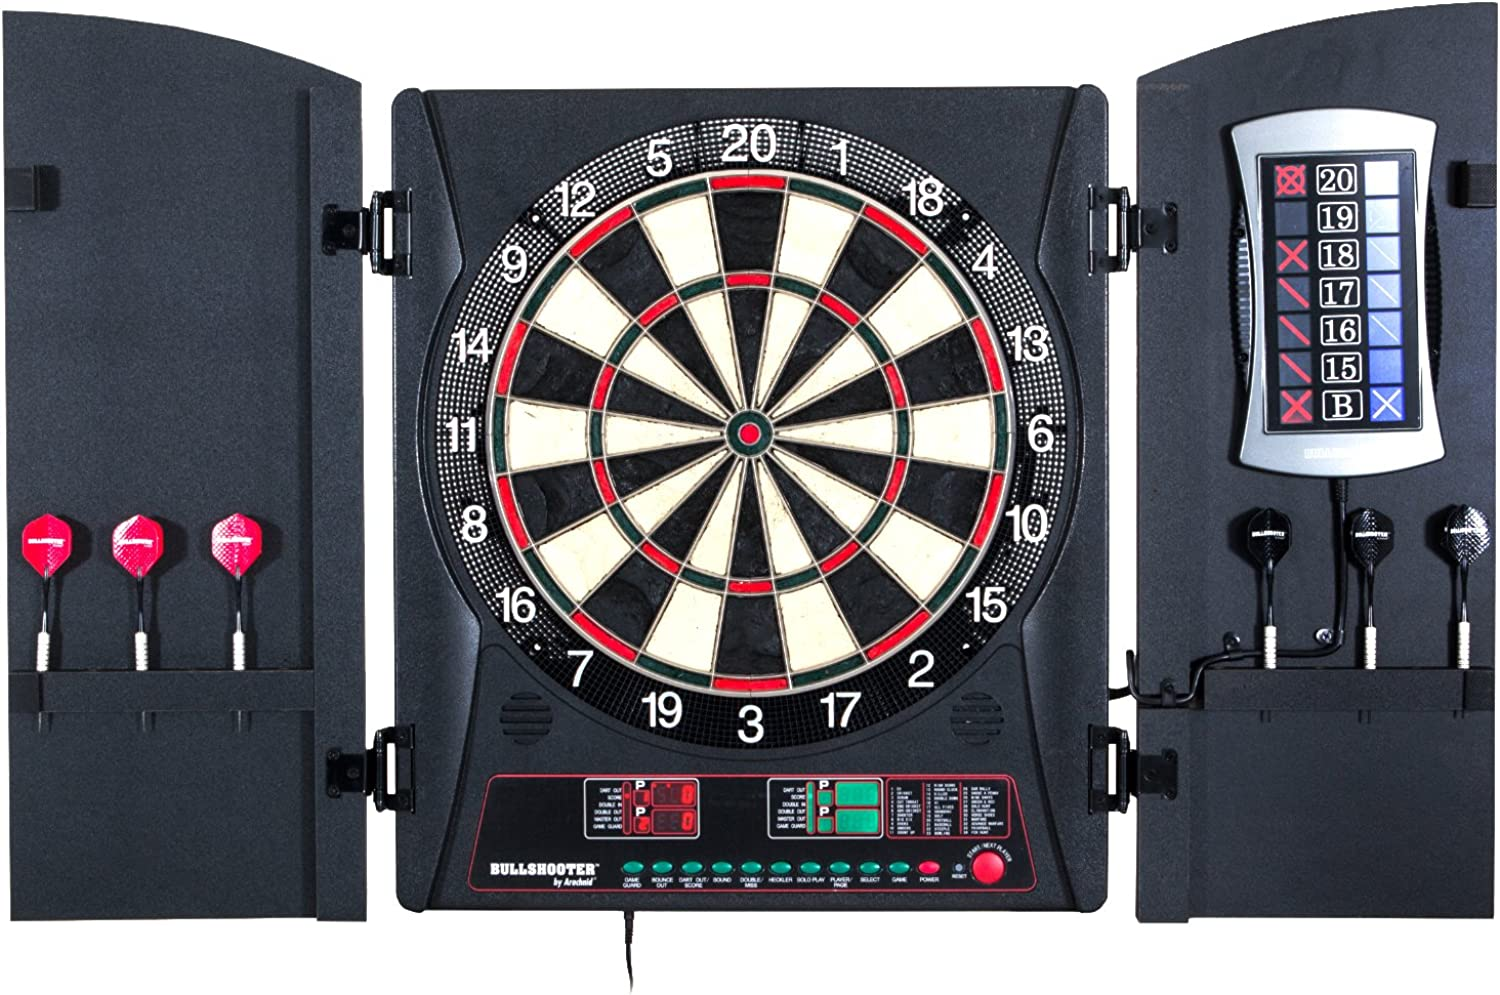 Bullshooter by Arachnid EBristle Cricketmaxx 3.0 Dartboard Cabinet Set